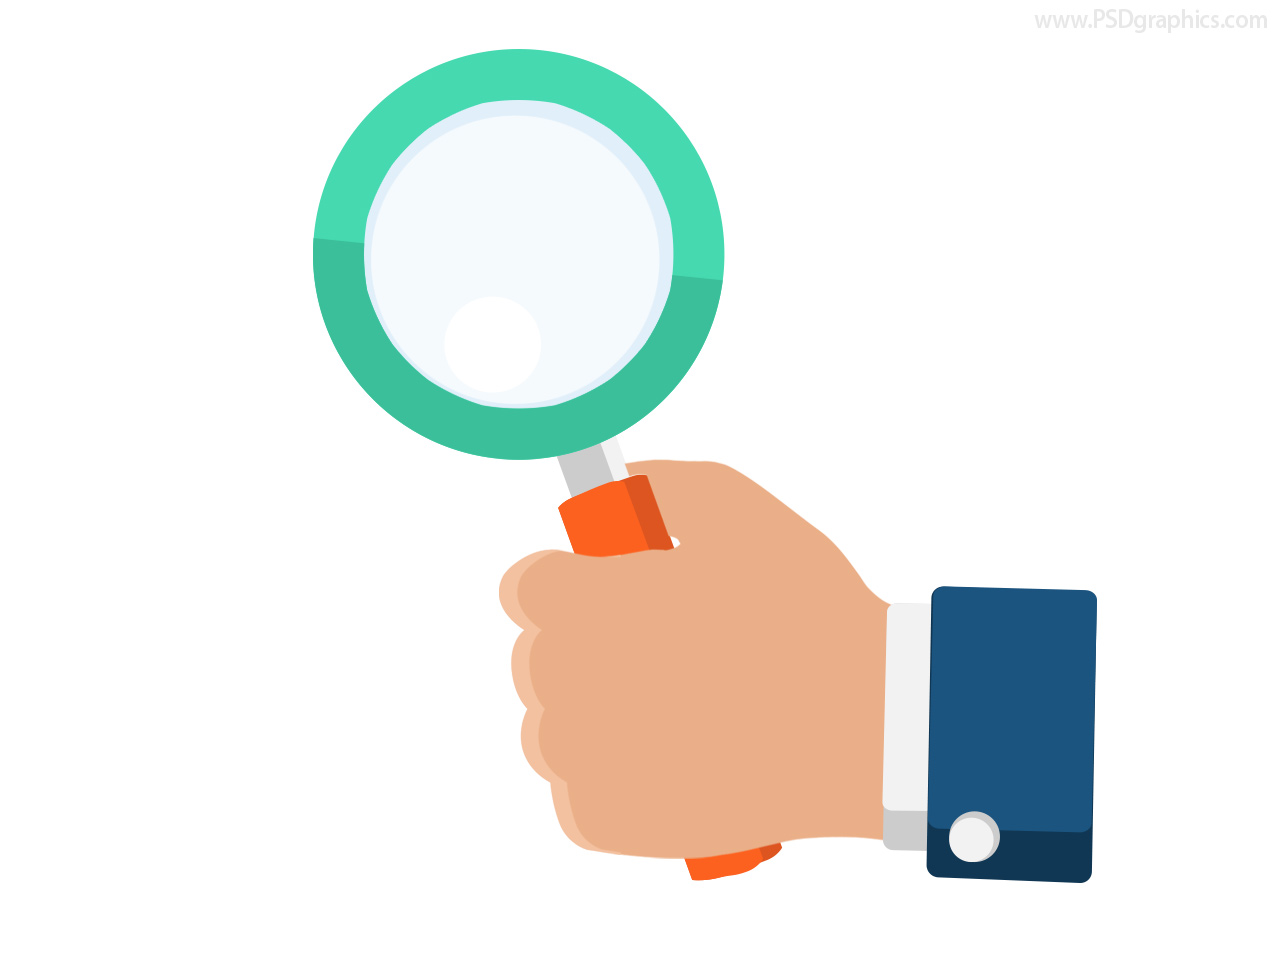 magnifying-glass-search-icon-2